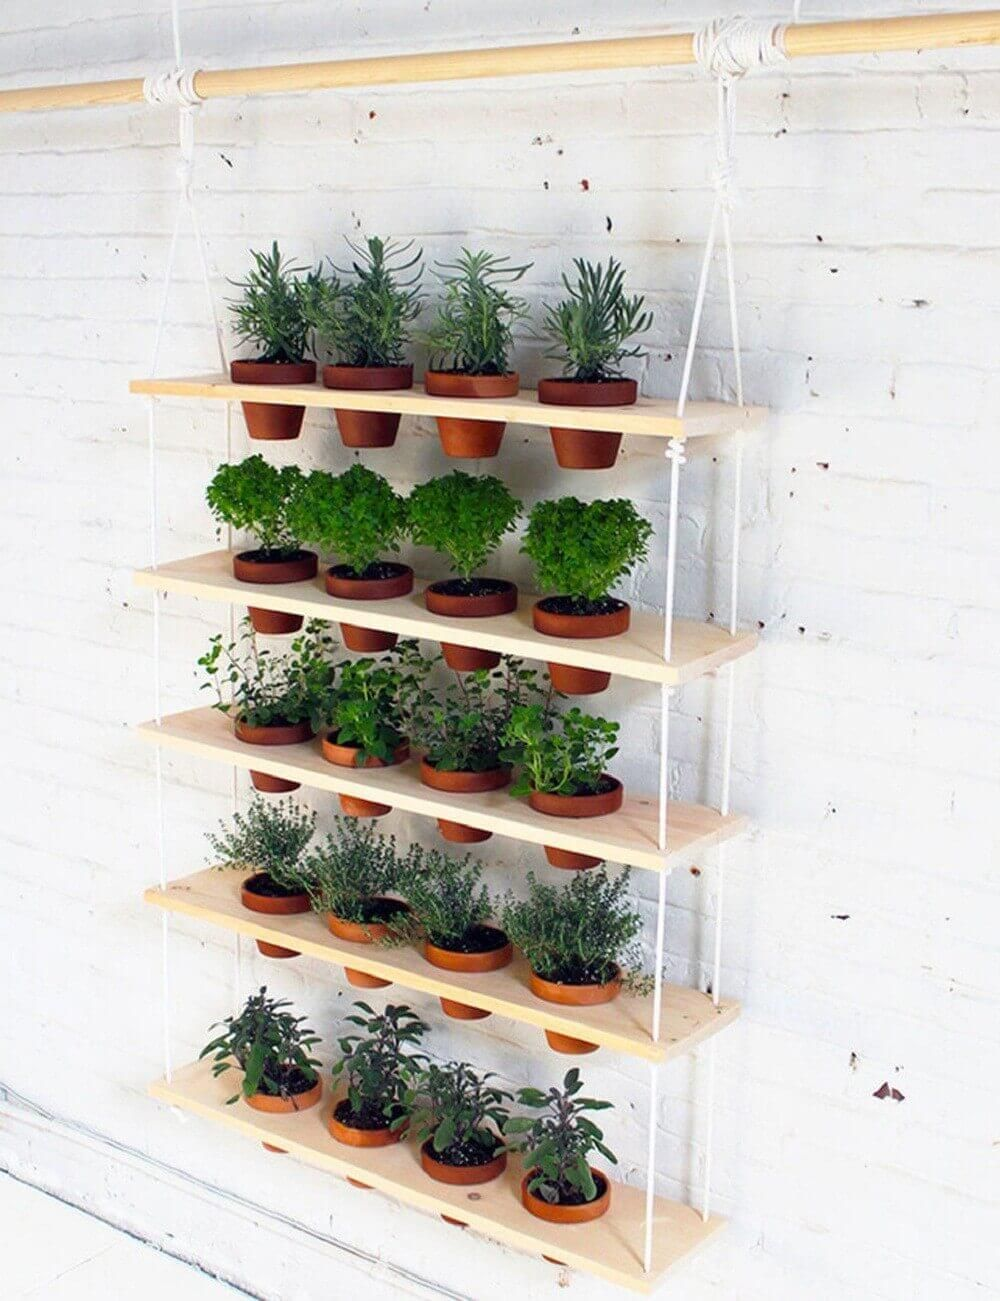 Easy To Make Hanging Herb Garden. I Could See Permanently Installing These  (minus The Rope) Under My Pergola On One Side My Back Deck As A Privacy  Divider ...